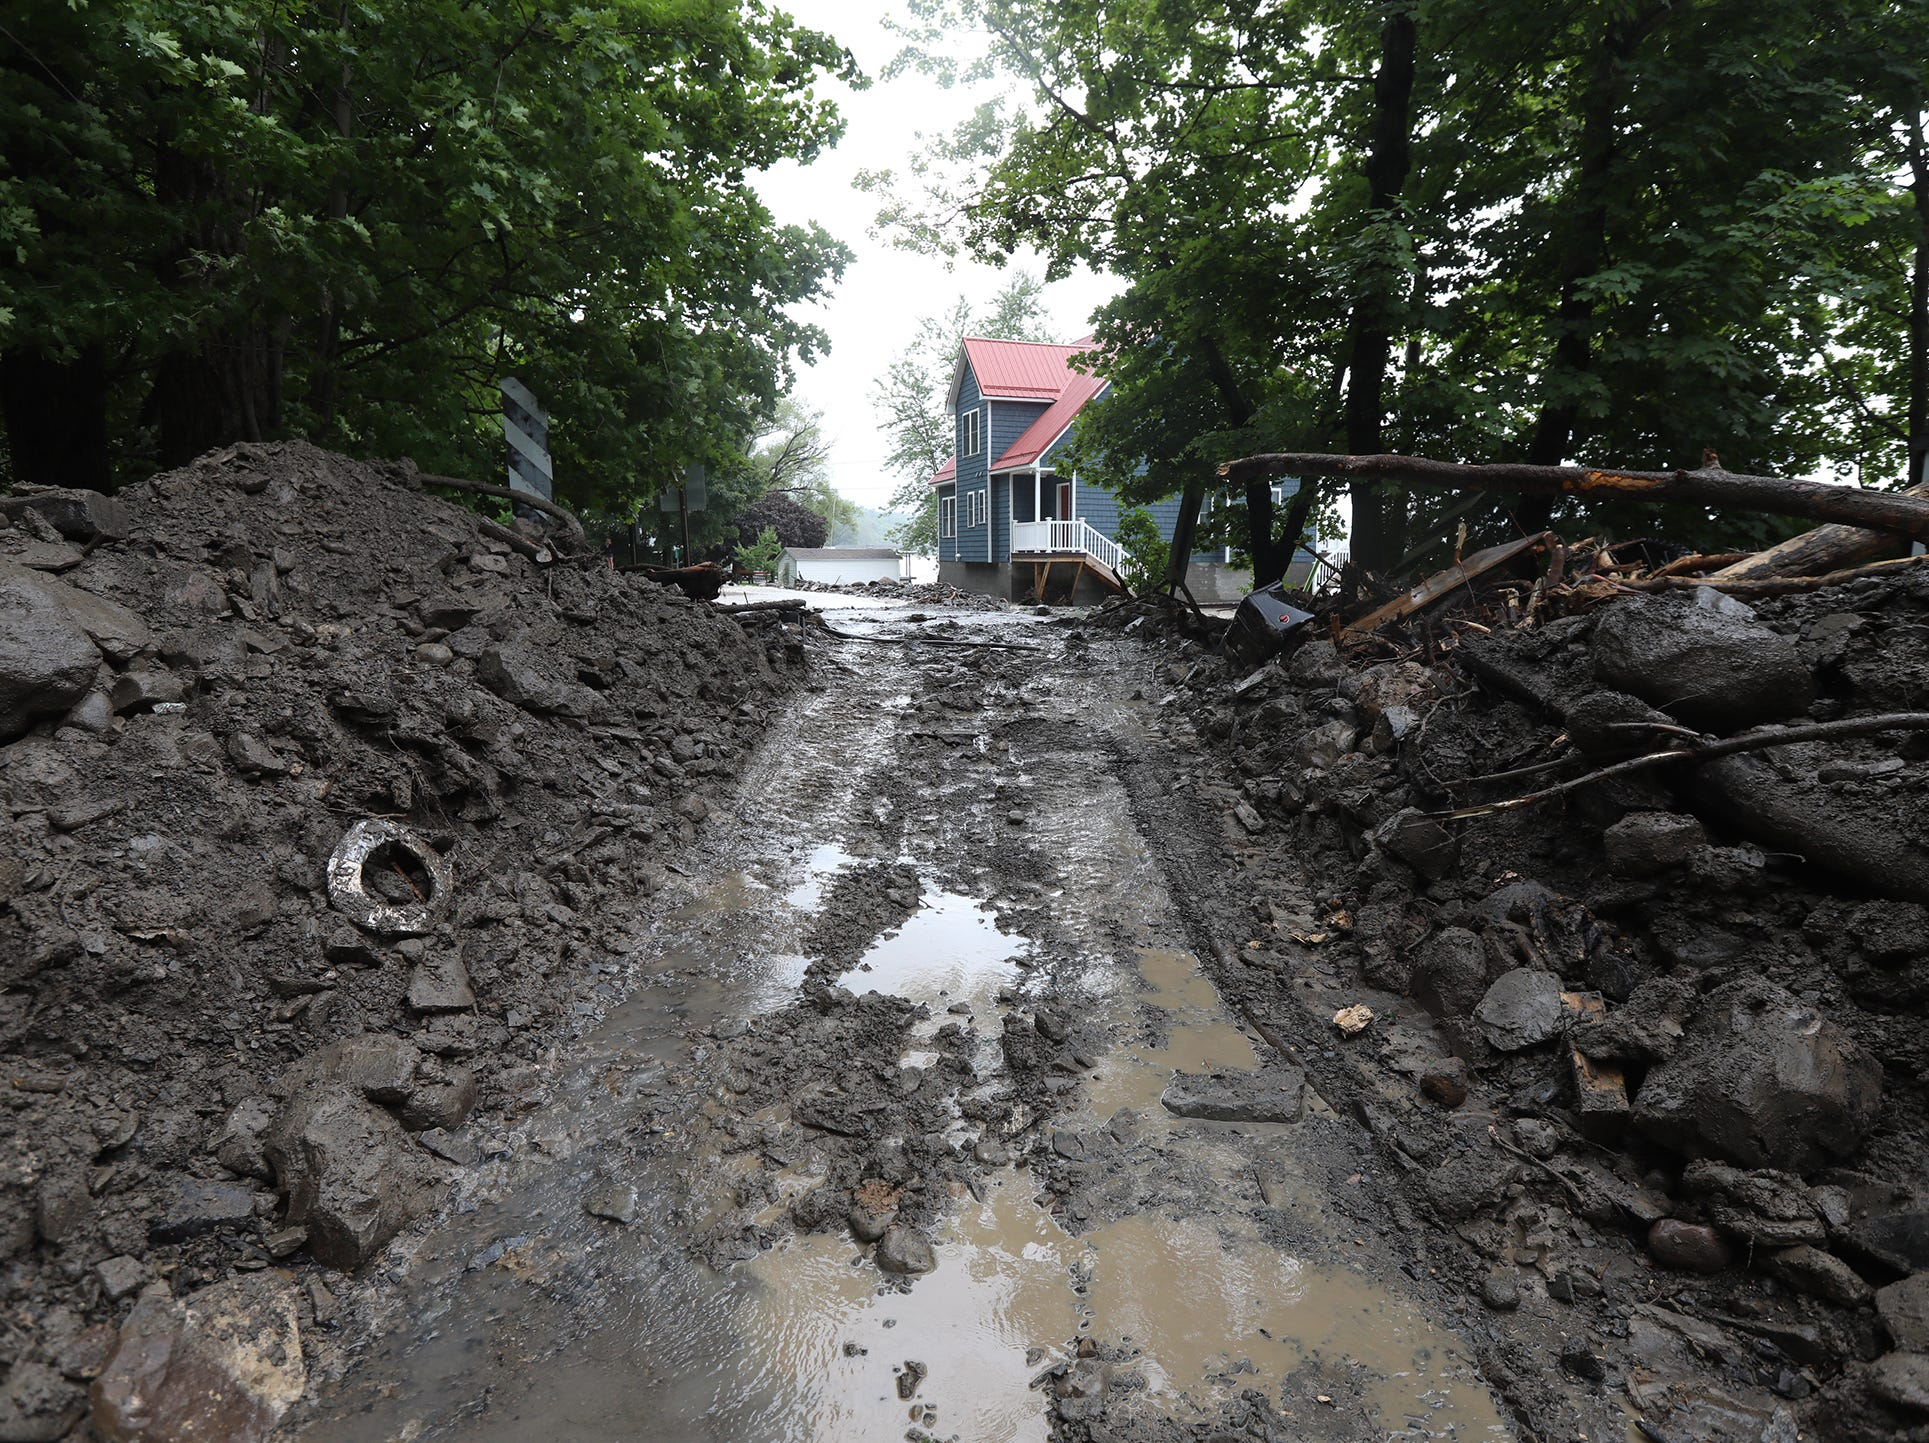 Workers were able to clear a passable area of Lower Lake Road after heavy rain caused flooding and washing away at Lodi Point, New York on Tuesday, August 14, 2018.